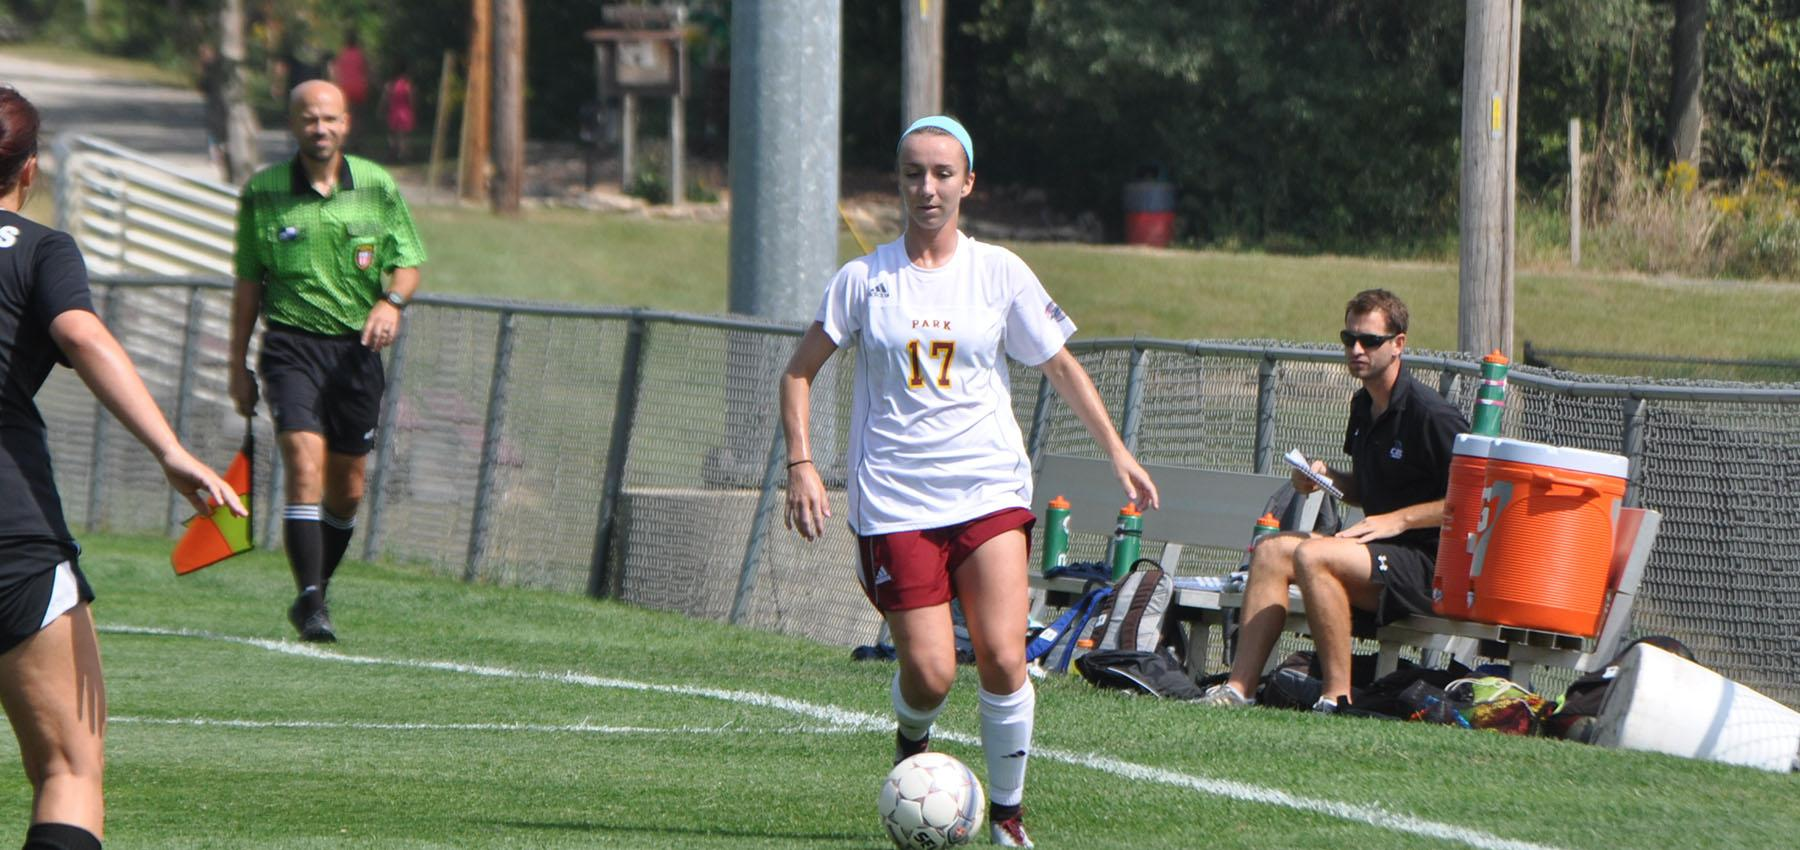 The Pirates' Alexis Fry scored the game-winning goal in the 82nd minute of play.